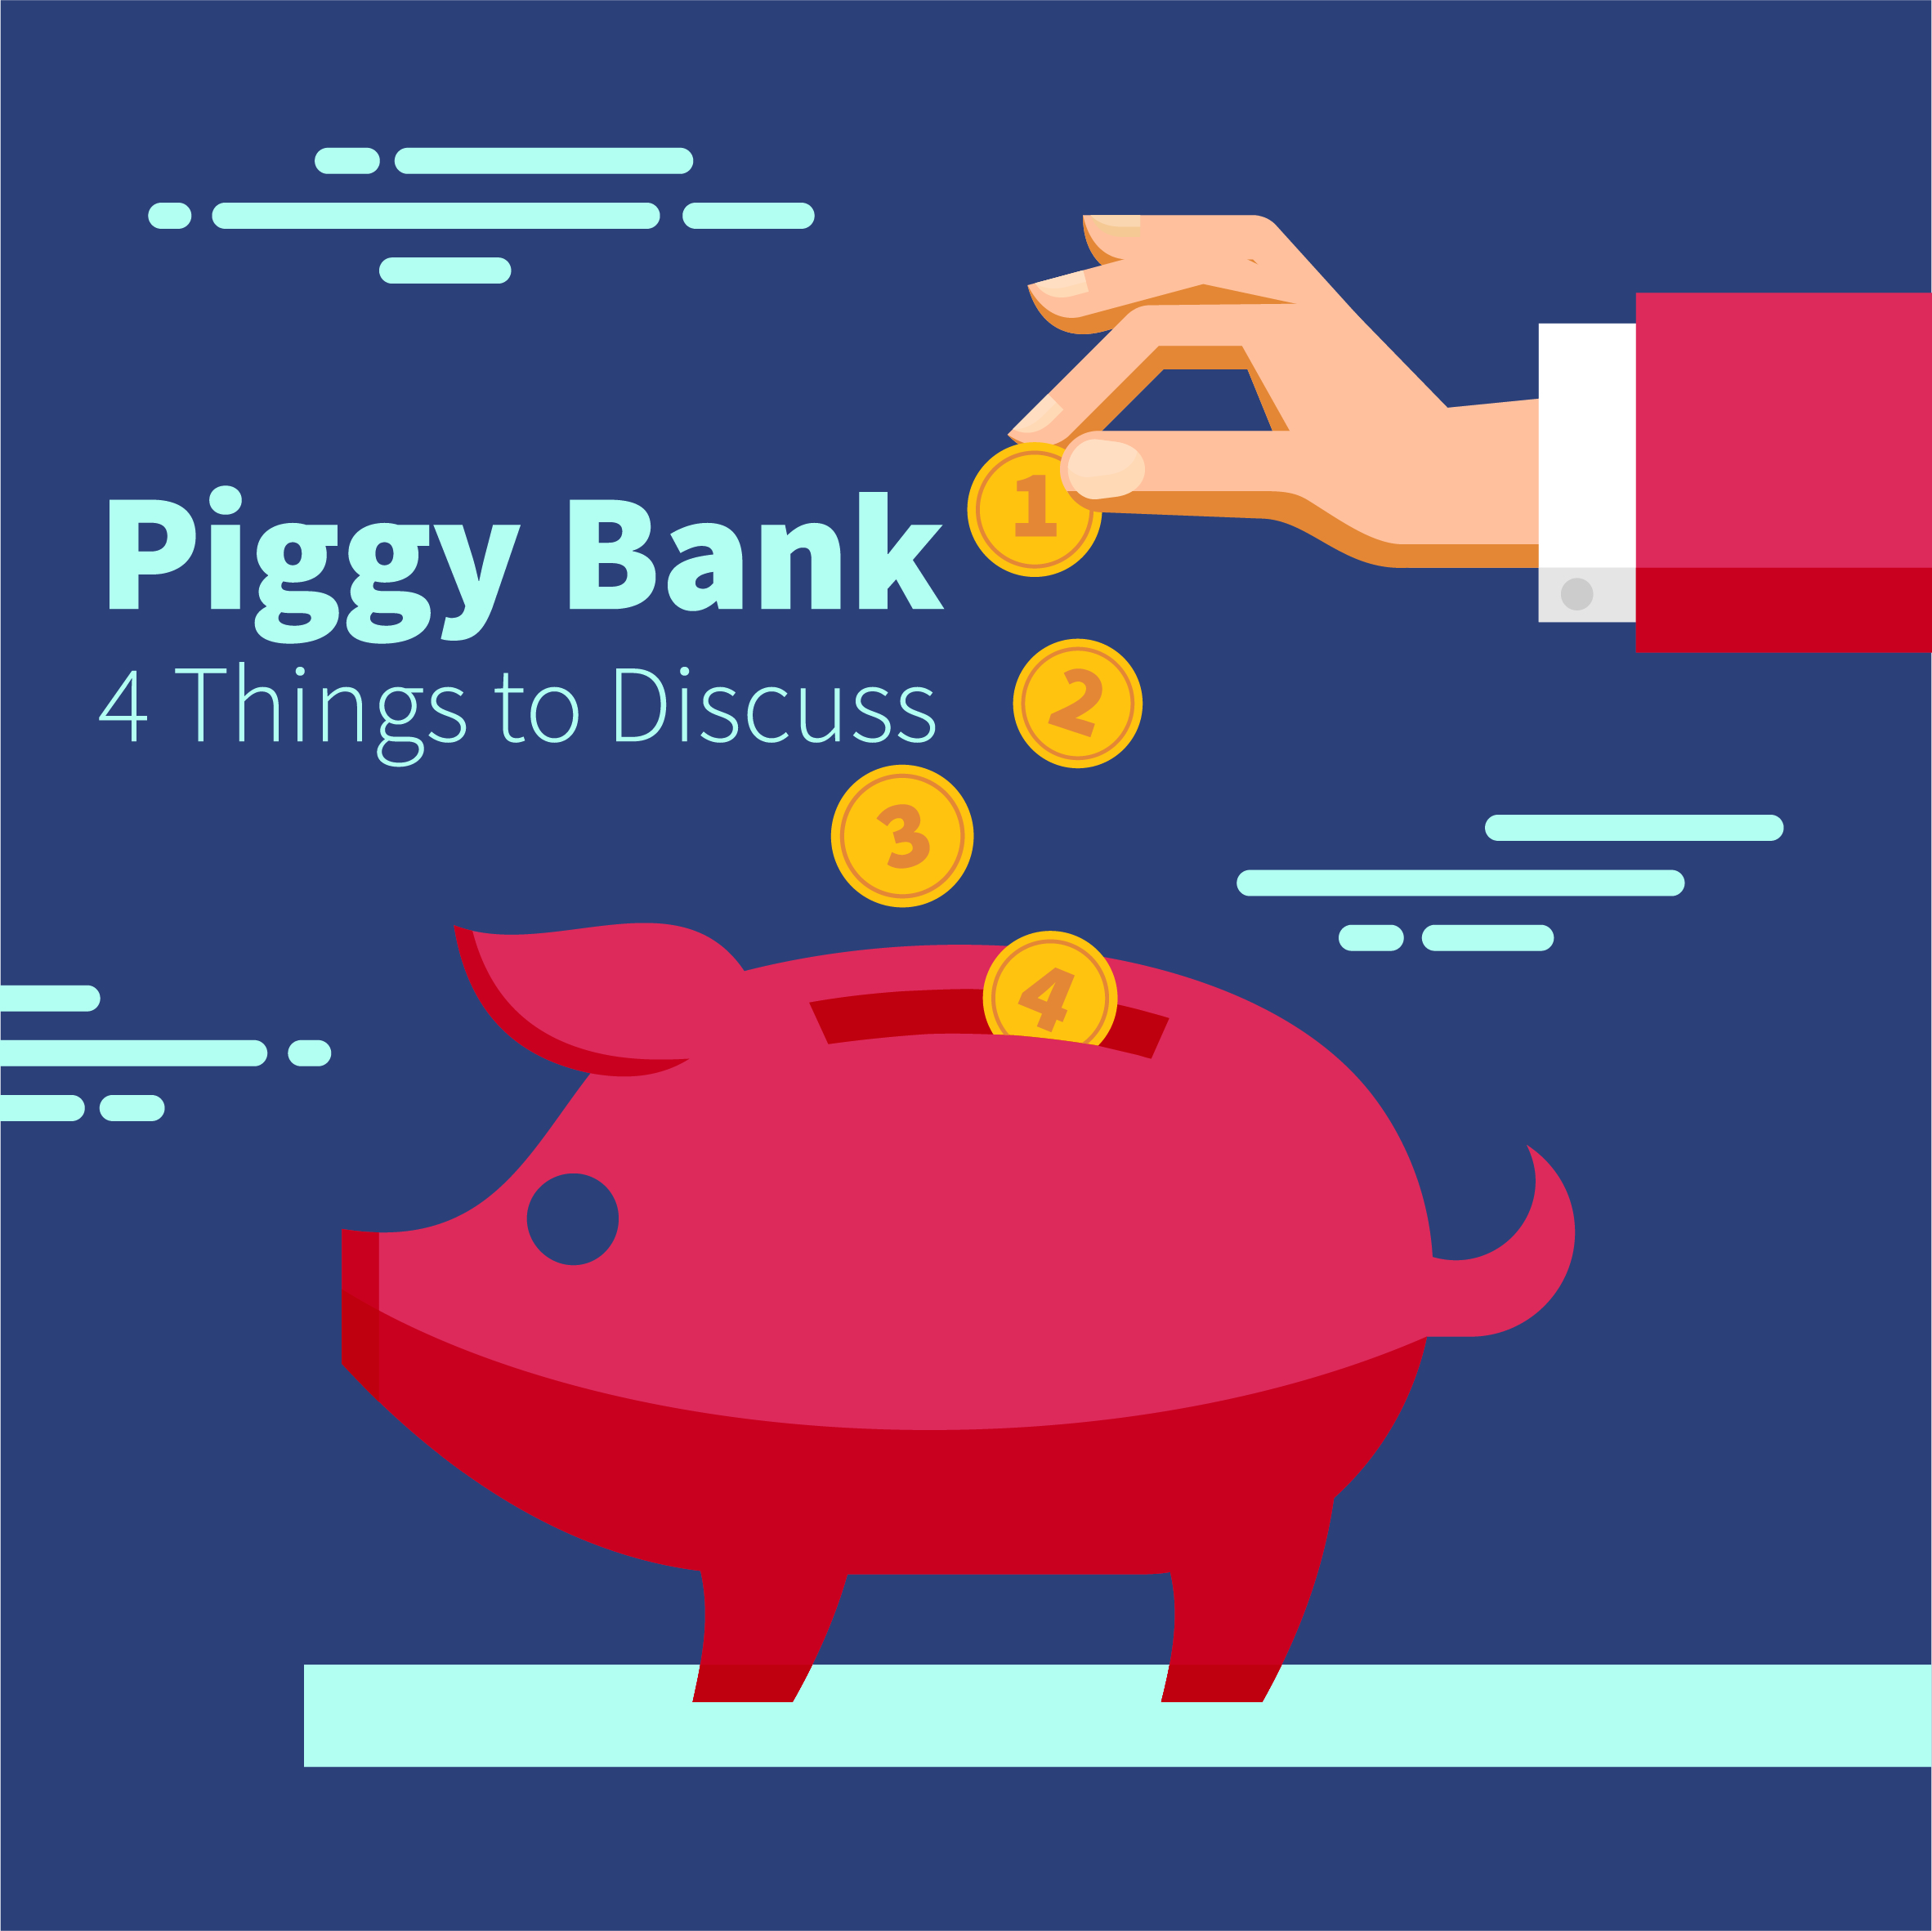 Piggy bank 4 things blog-01.jpg